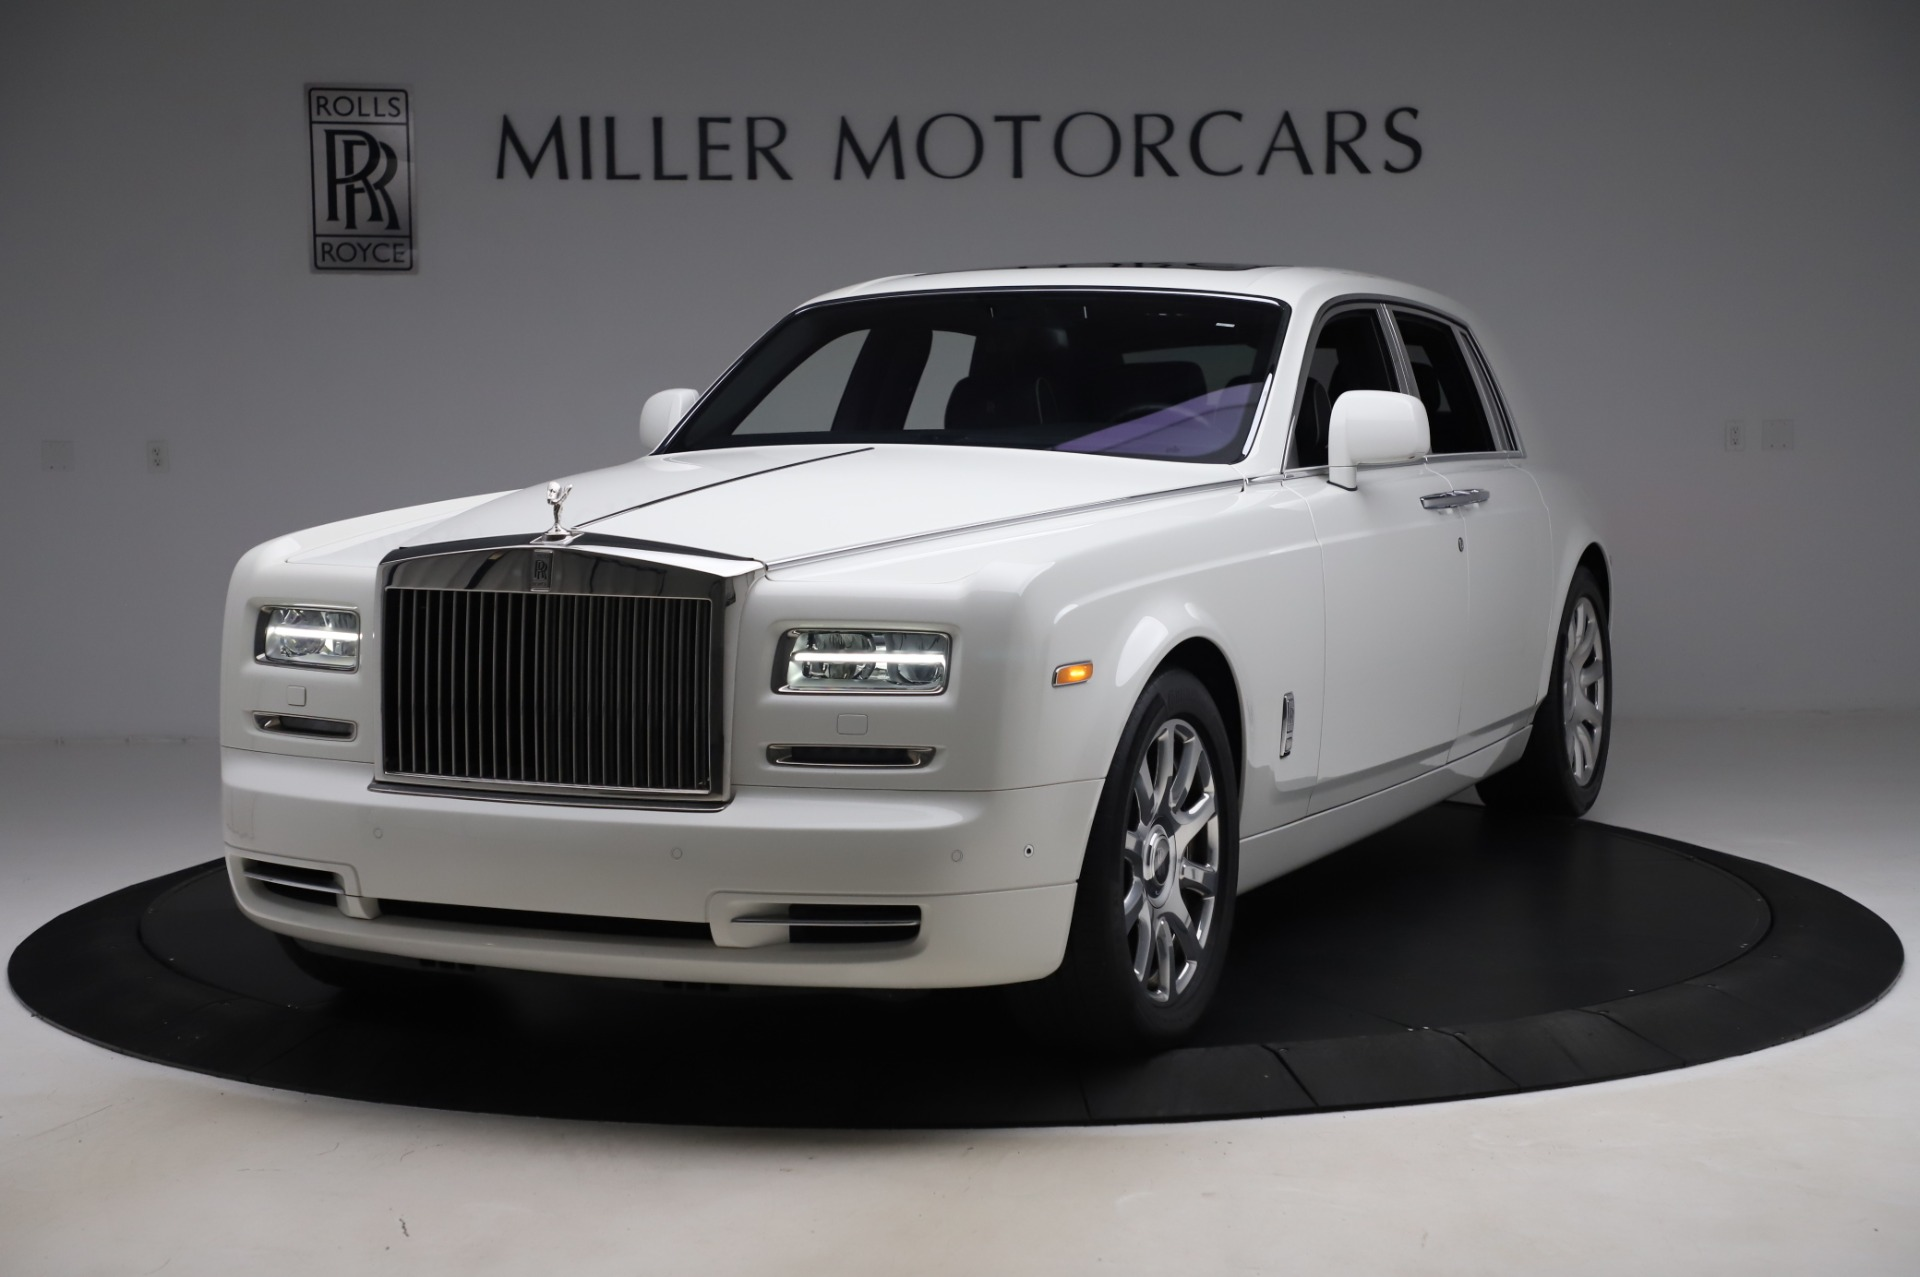 Used 2014 Rolls-Royce Phantom for sale $179,900 at Alfa Romeo of Westport in Westport CT 06880 1